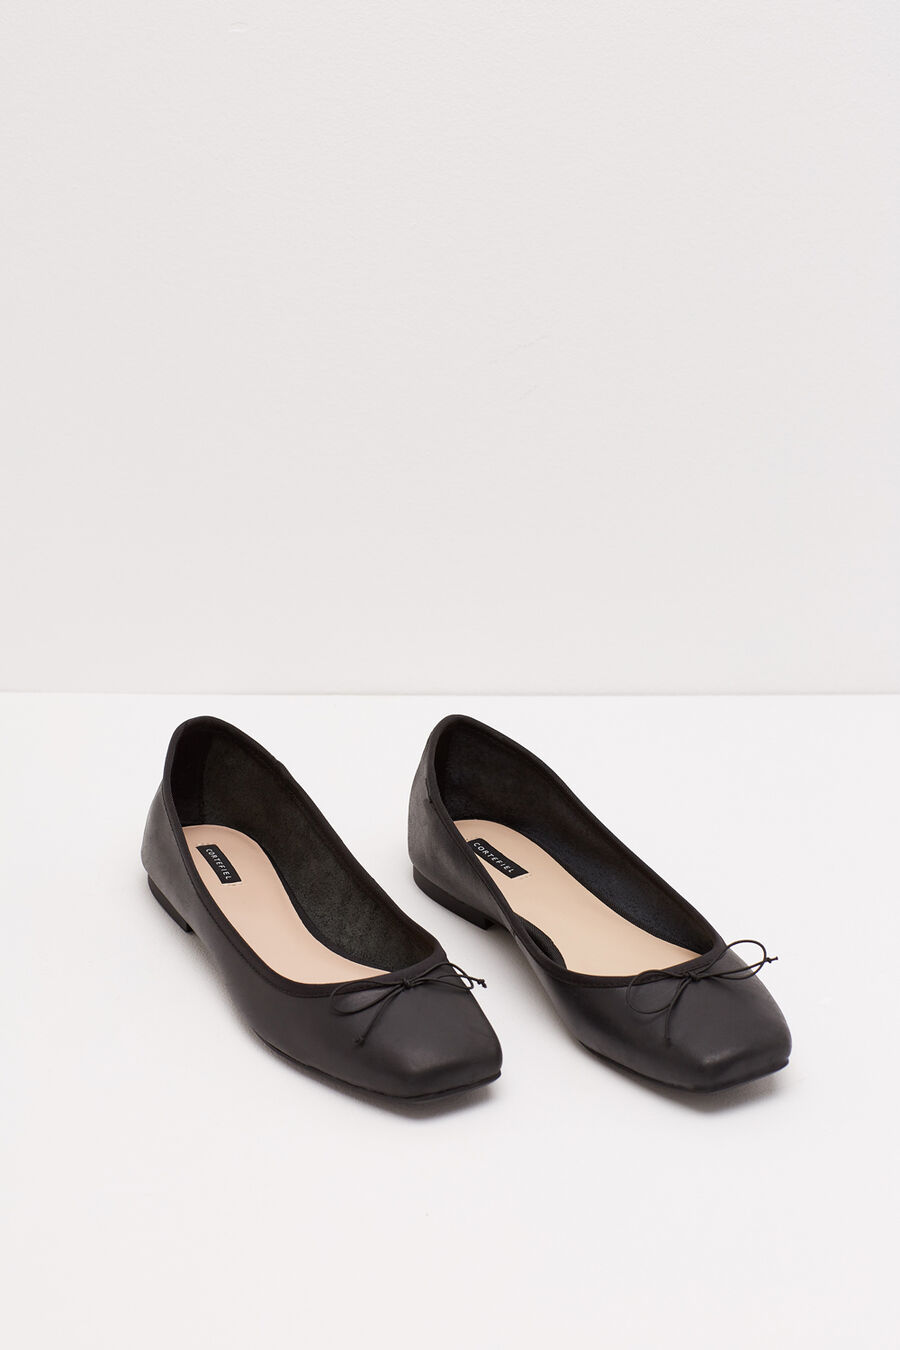 Bow ballerina flat shoes